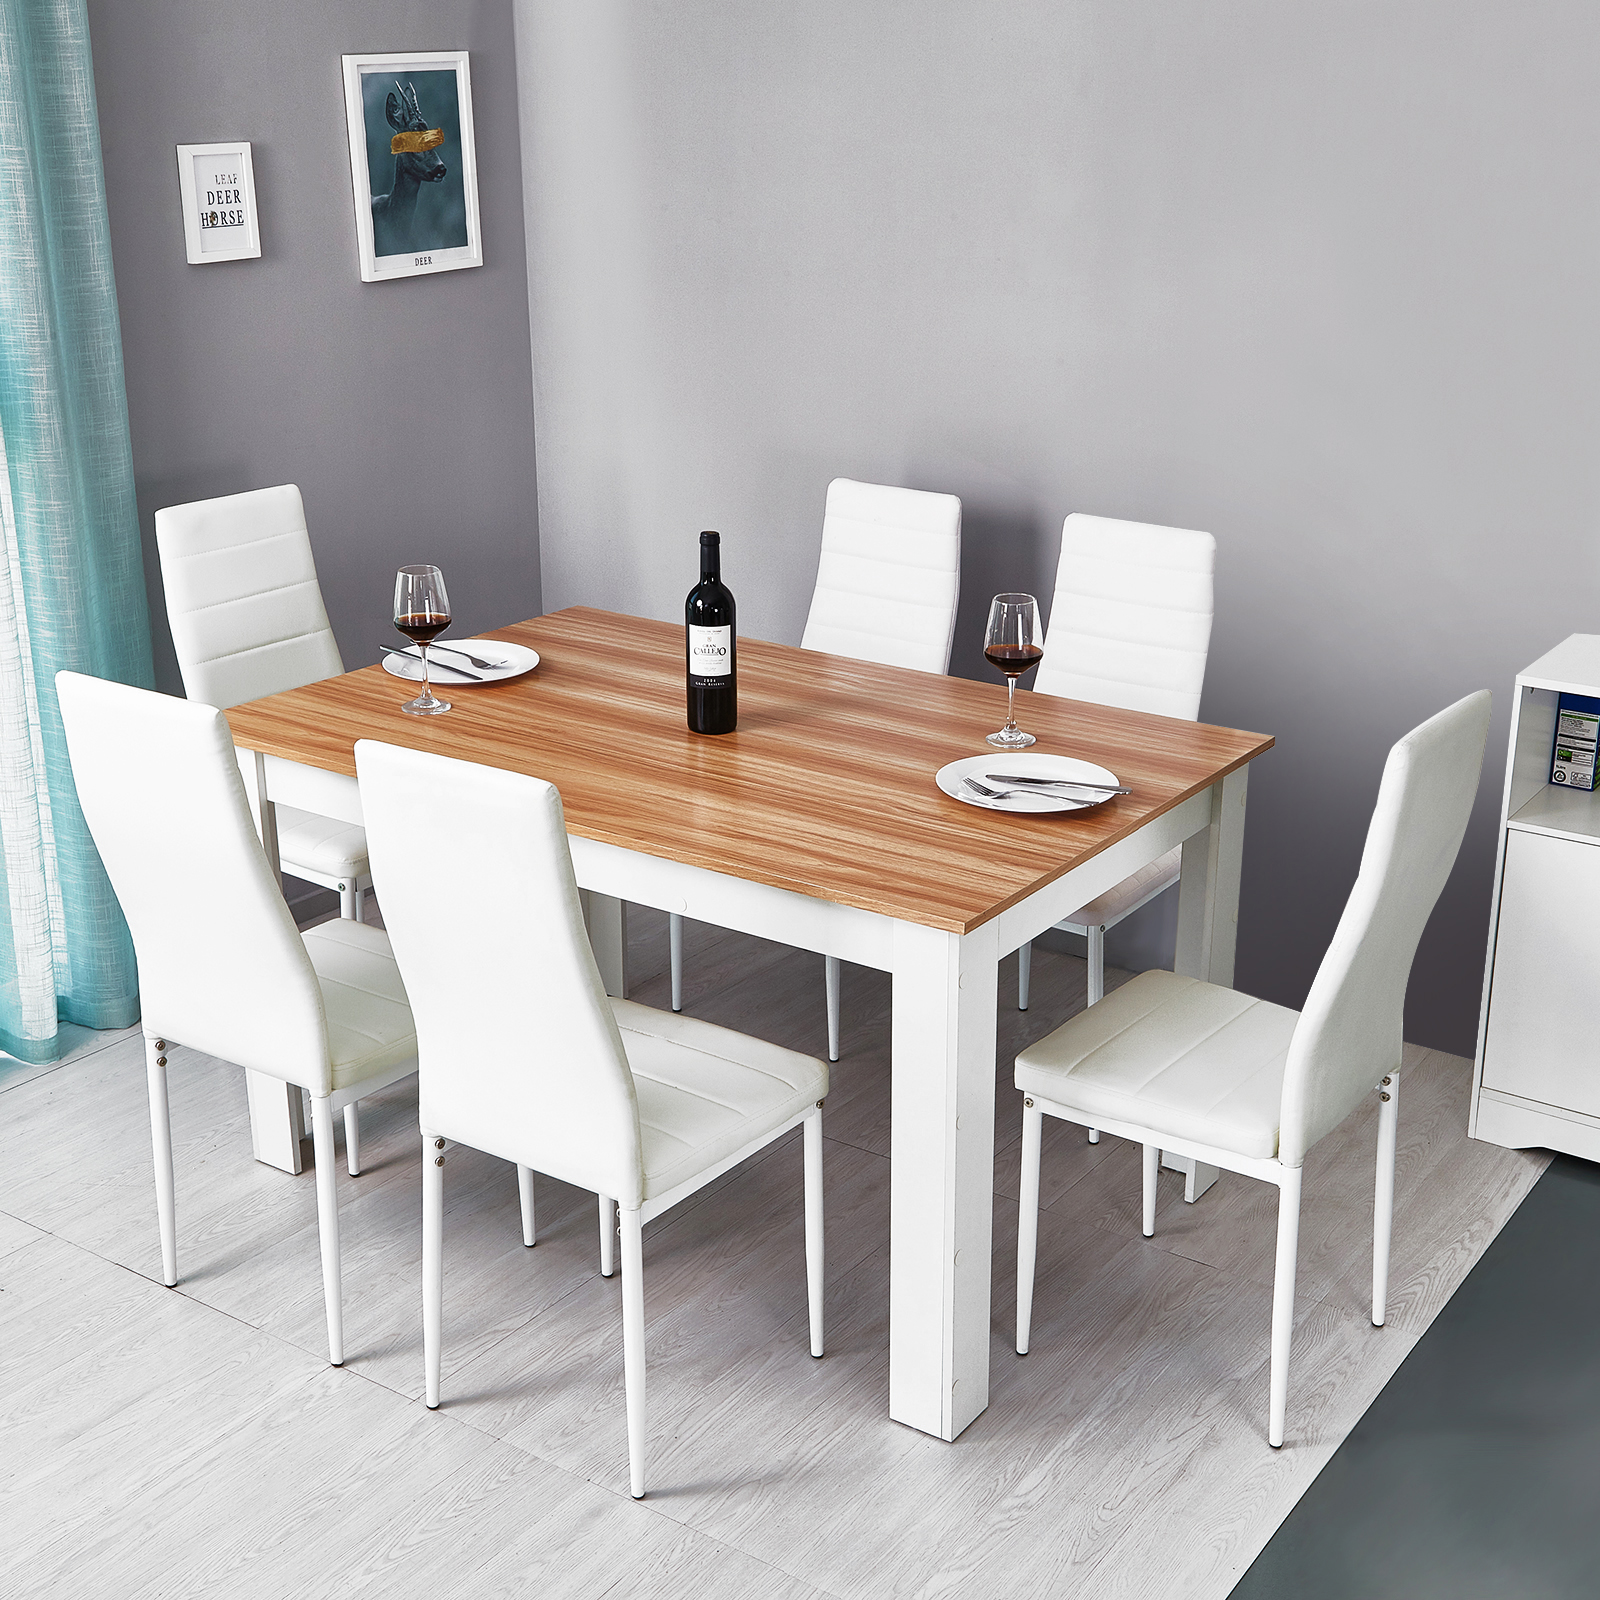 Details about Wooden Dining Table Set w/7 Faux Leather Chairs Seat Kitchen  Furniture Oak&White